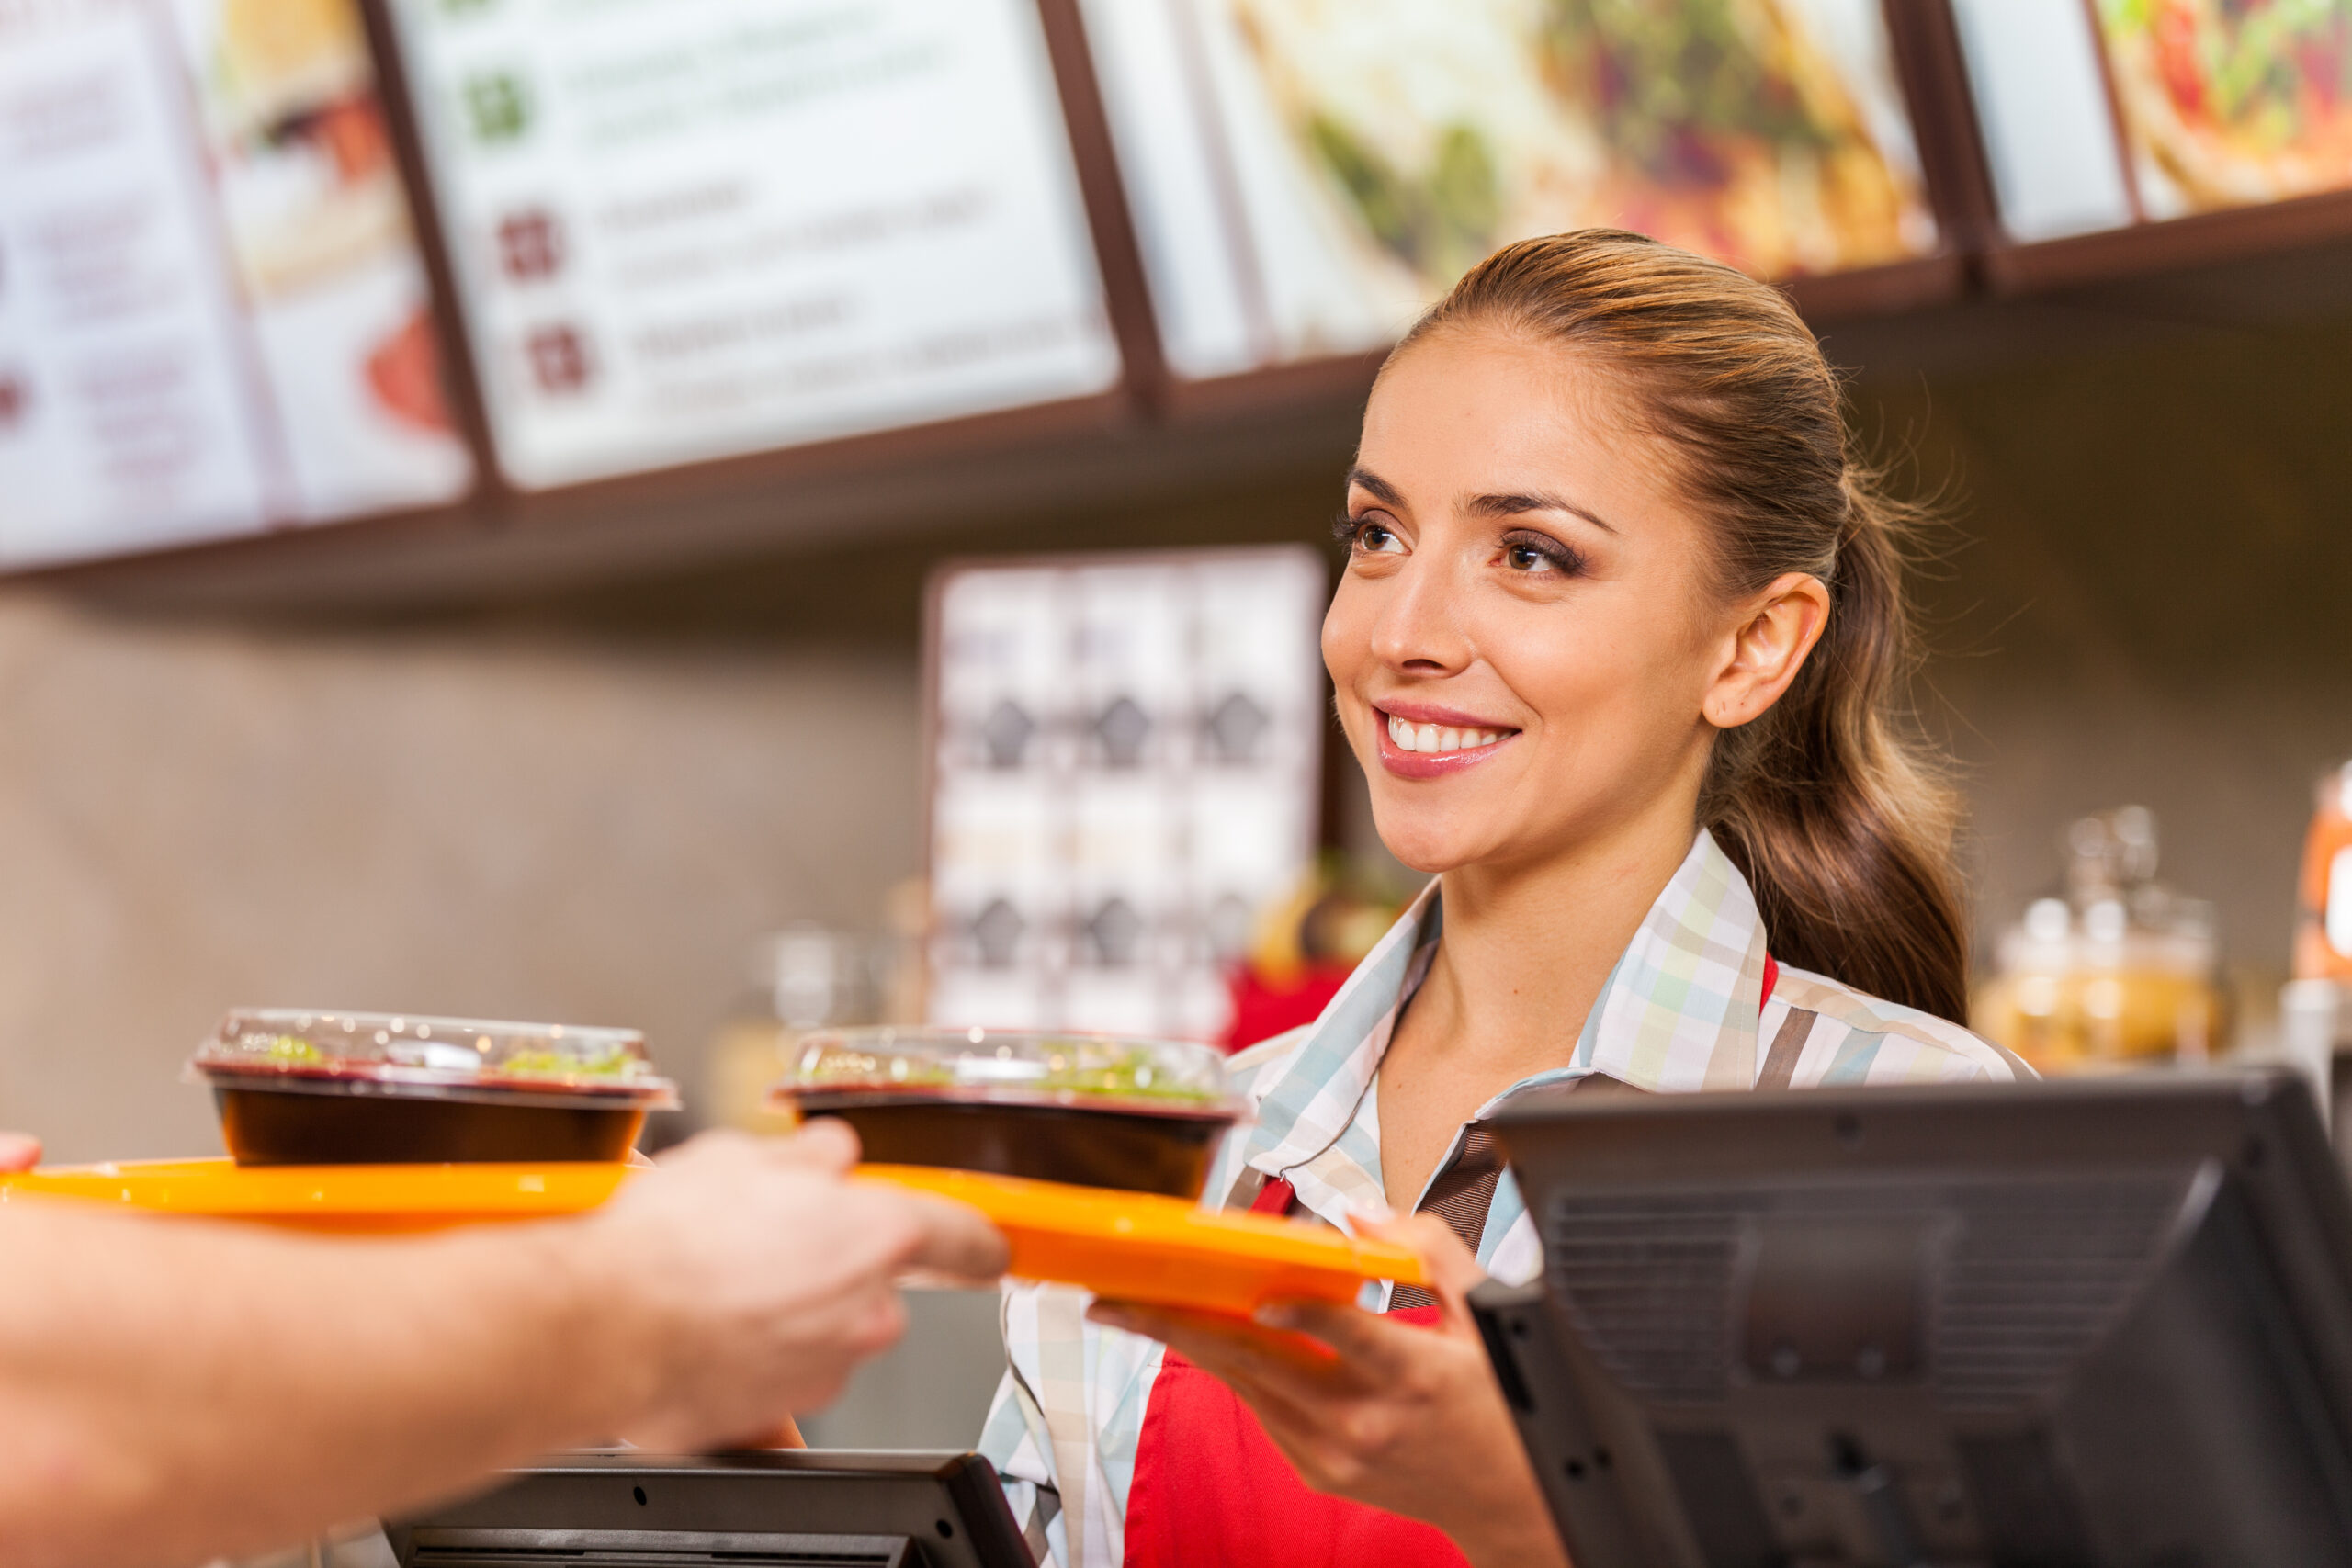 Employee serving two fast food meals